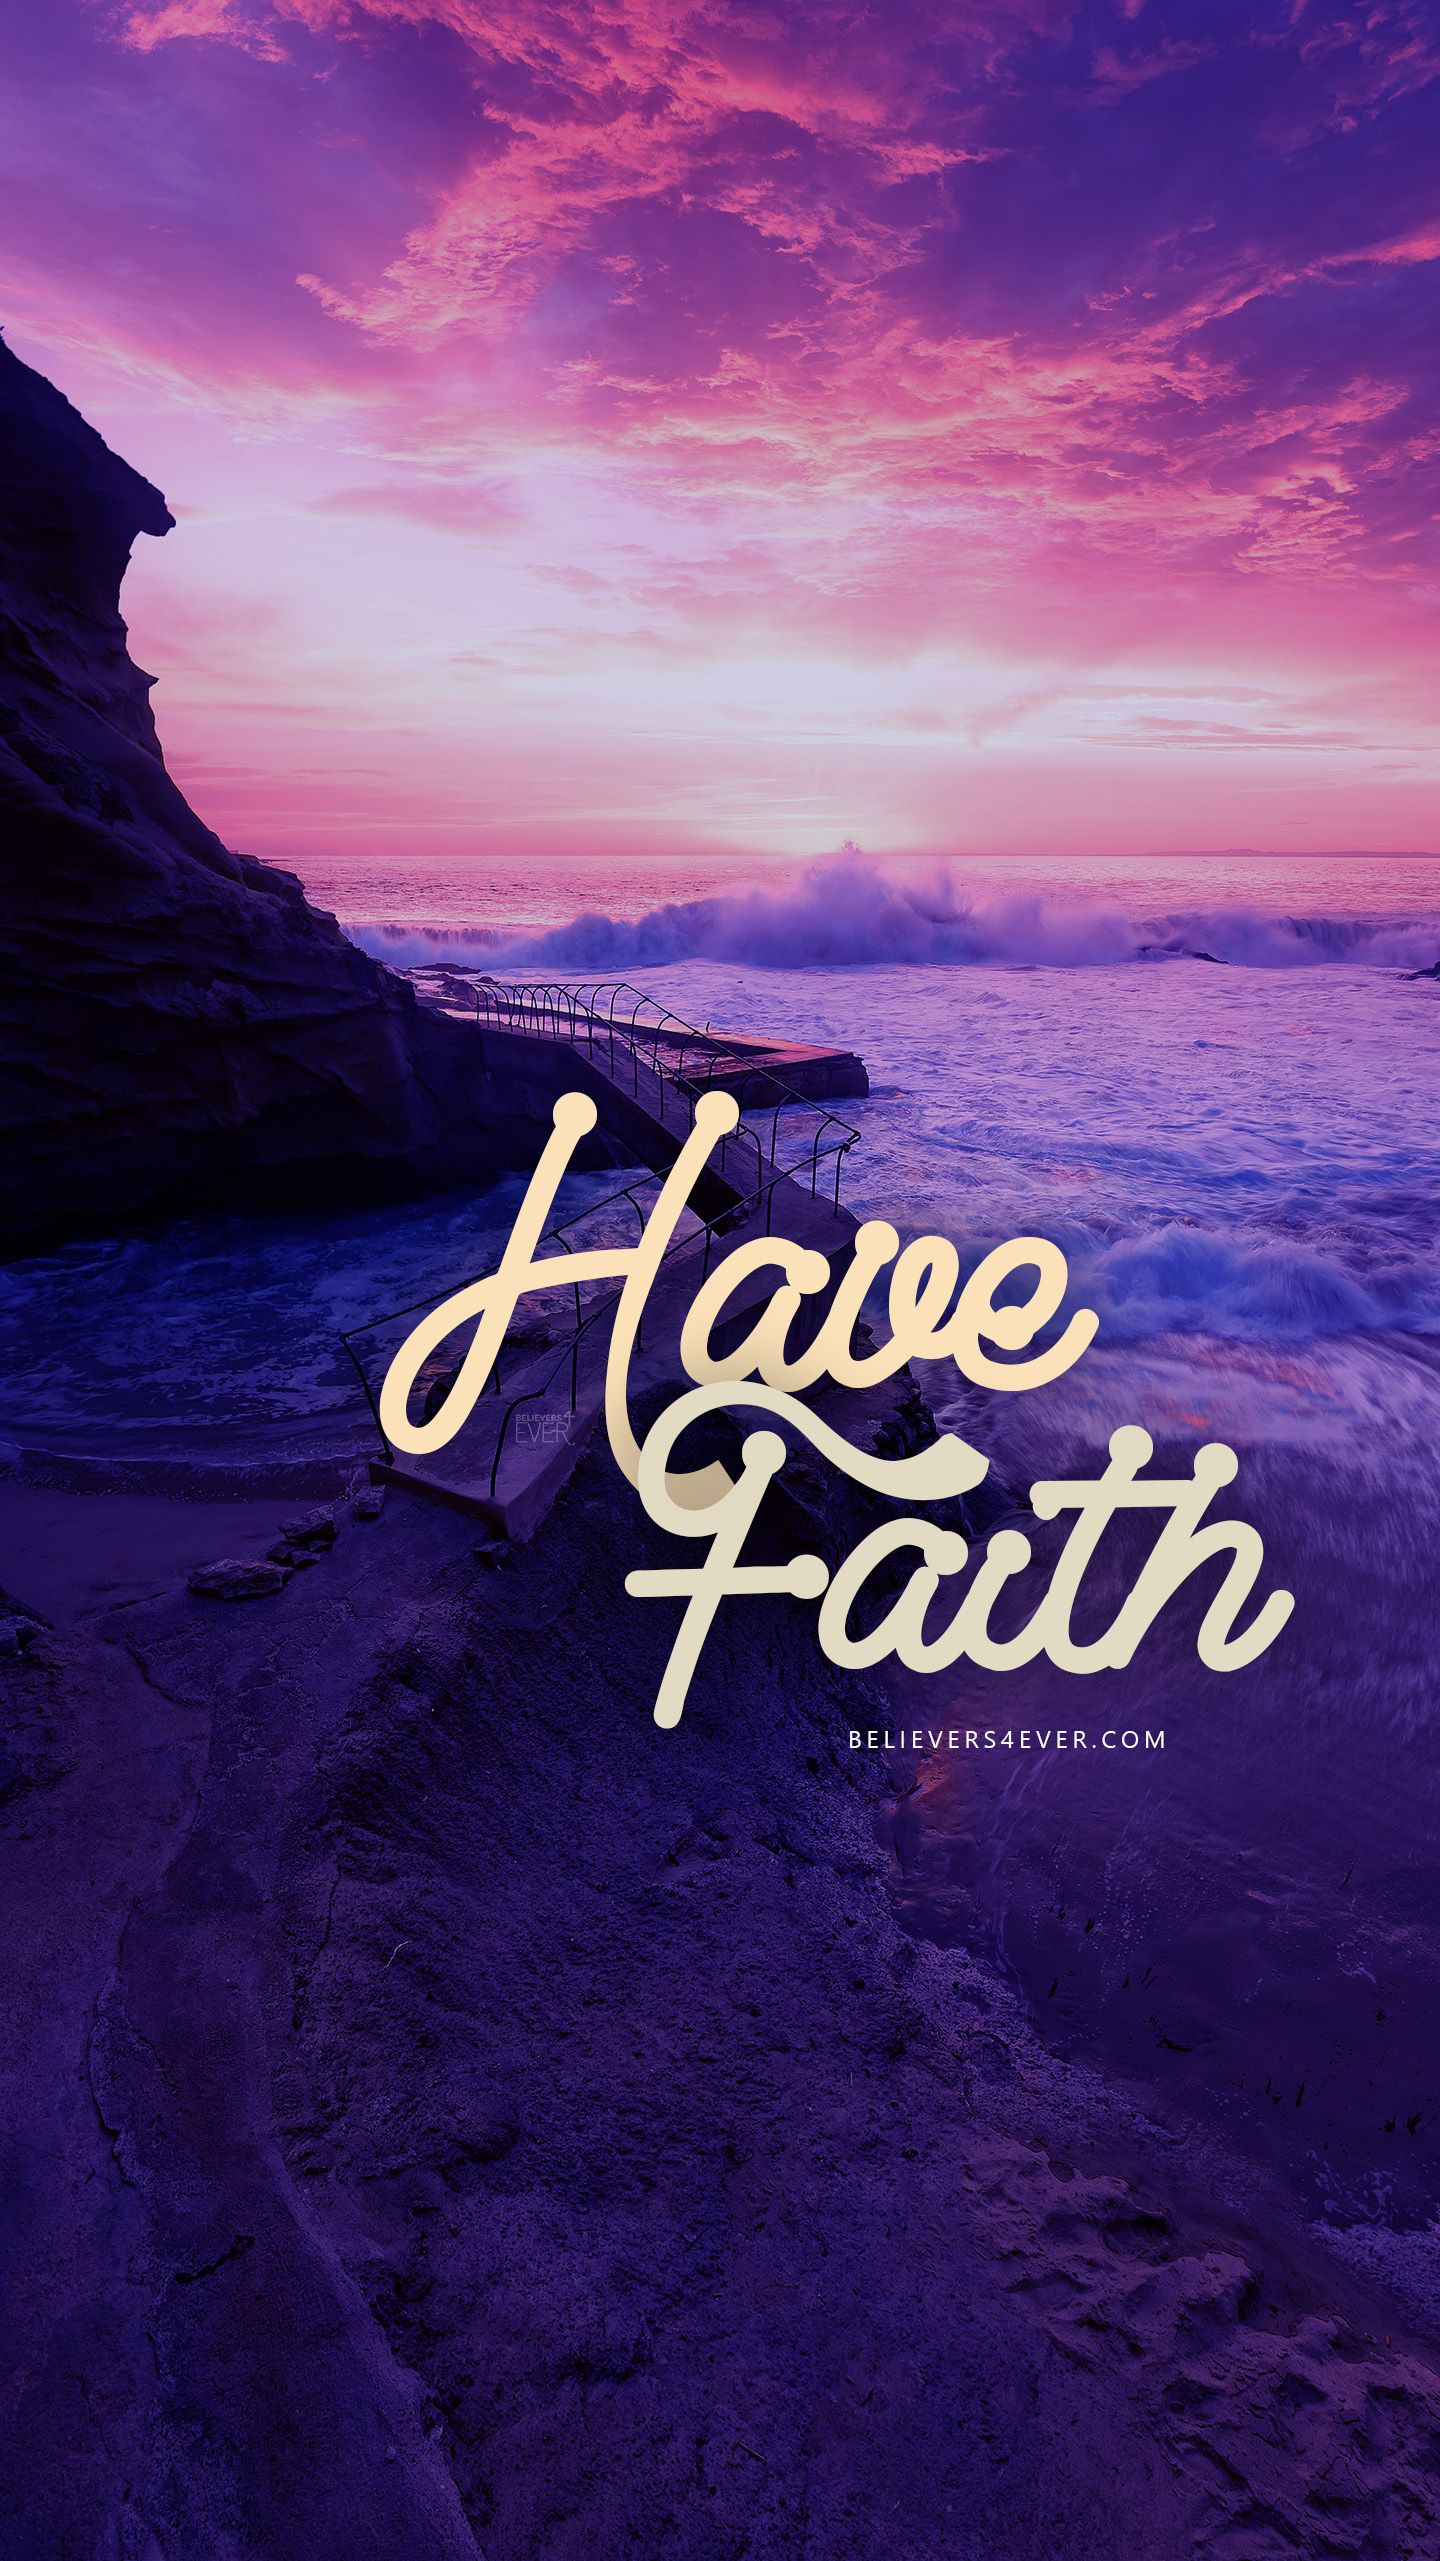 Have Faith | Wallpaper | Pinterest | Mobile wallpaper, Wallpaper backgrounds and Wallpaper